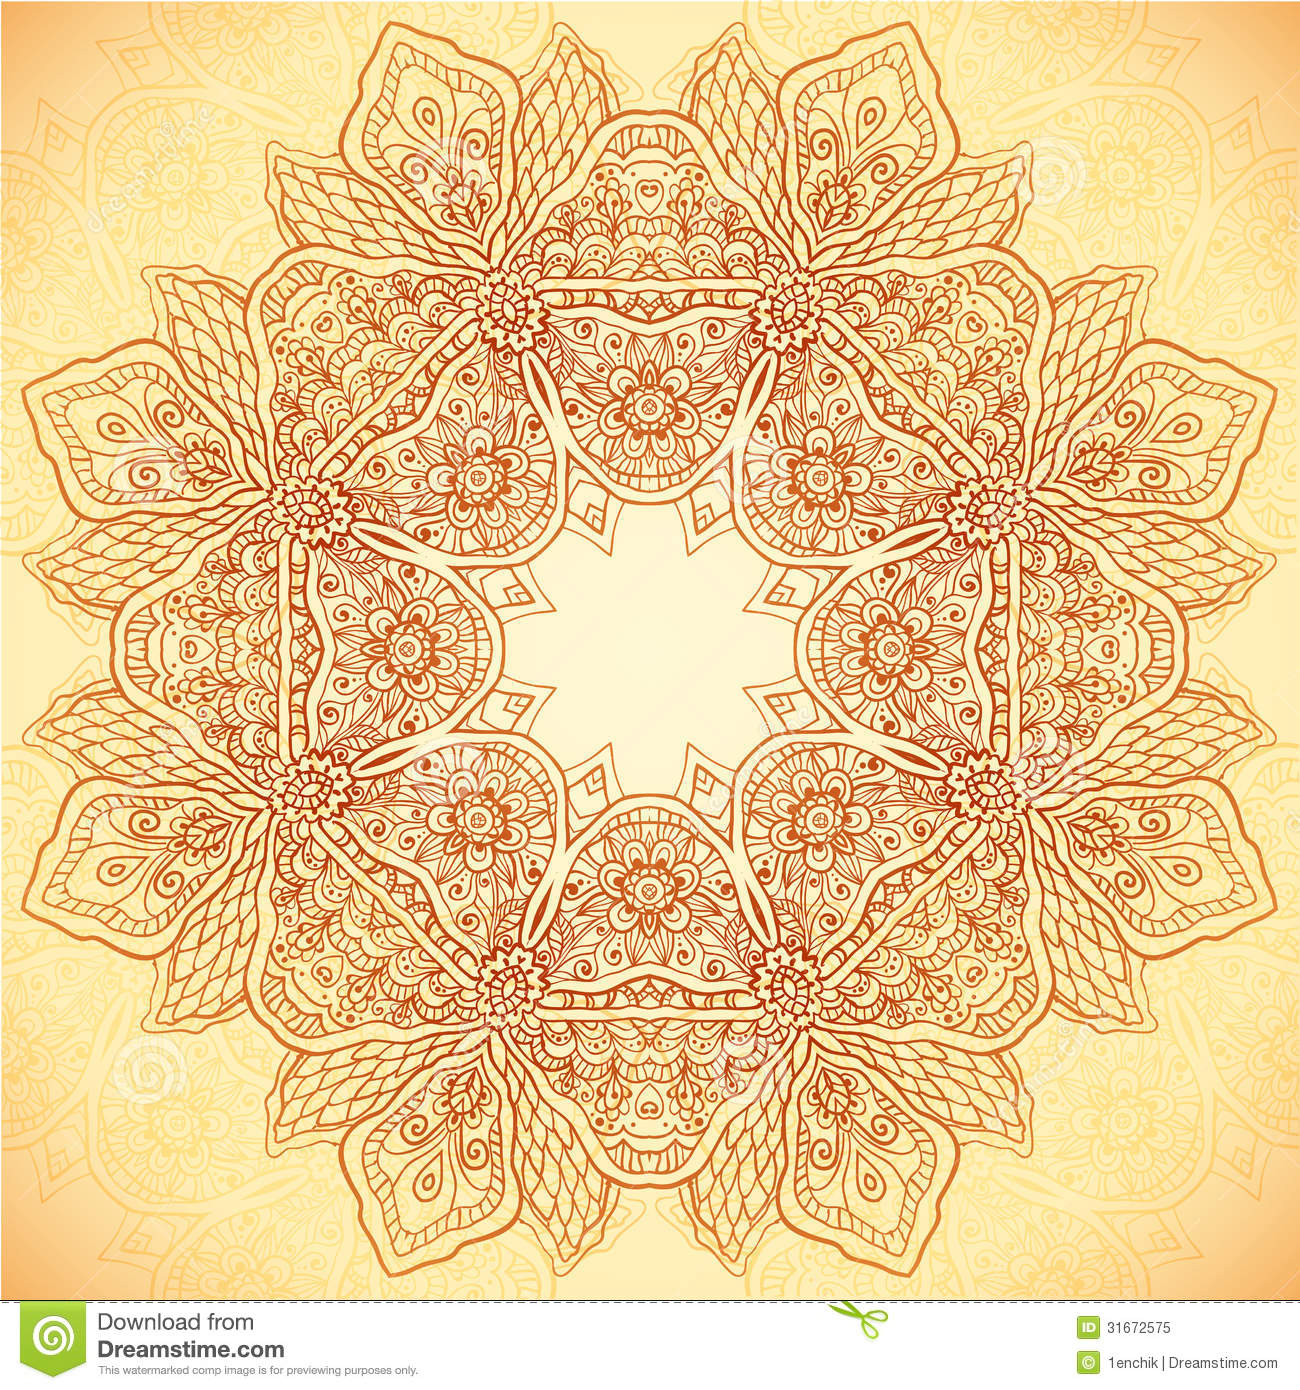 Ornate vintage vector background in mehndi style royalty free stock - Royalty Free Stock Photo Download Ornate Vintage Vector Flower Napkin Background